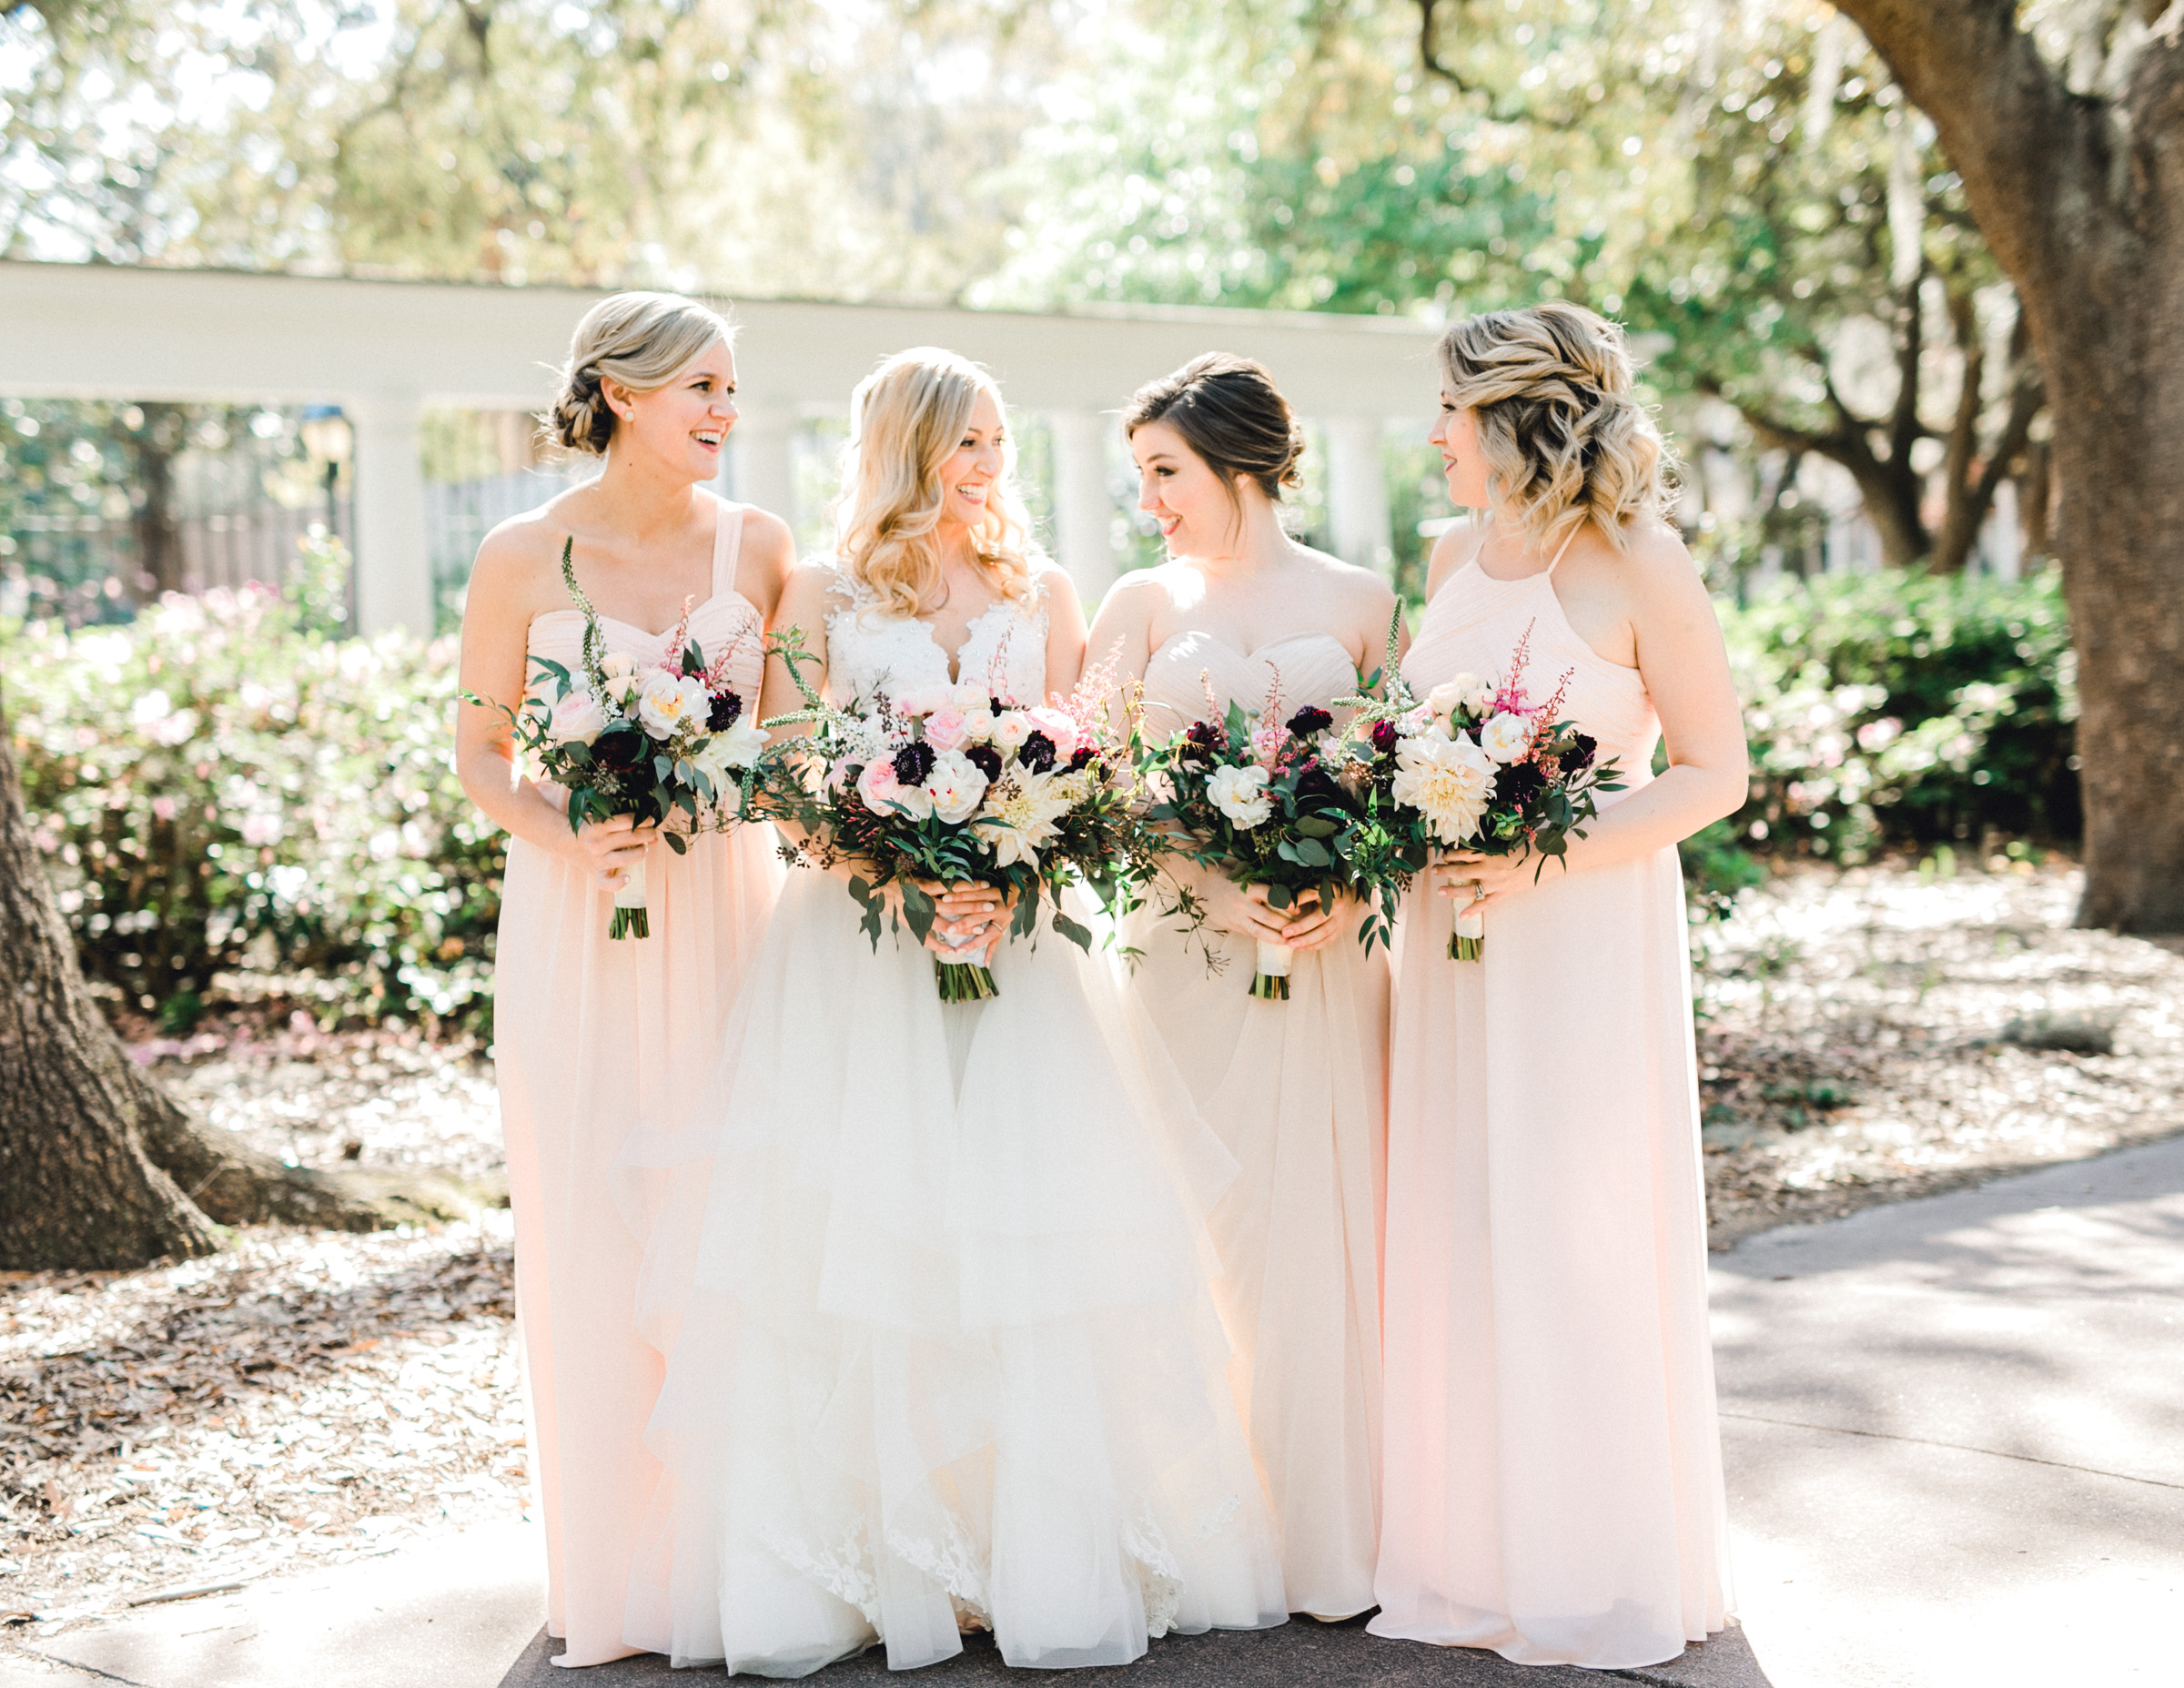 savannah wedding photographer katherine ives photography-9216.JPG